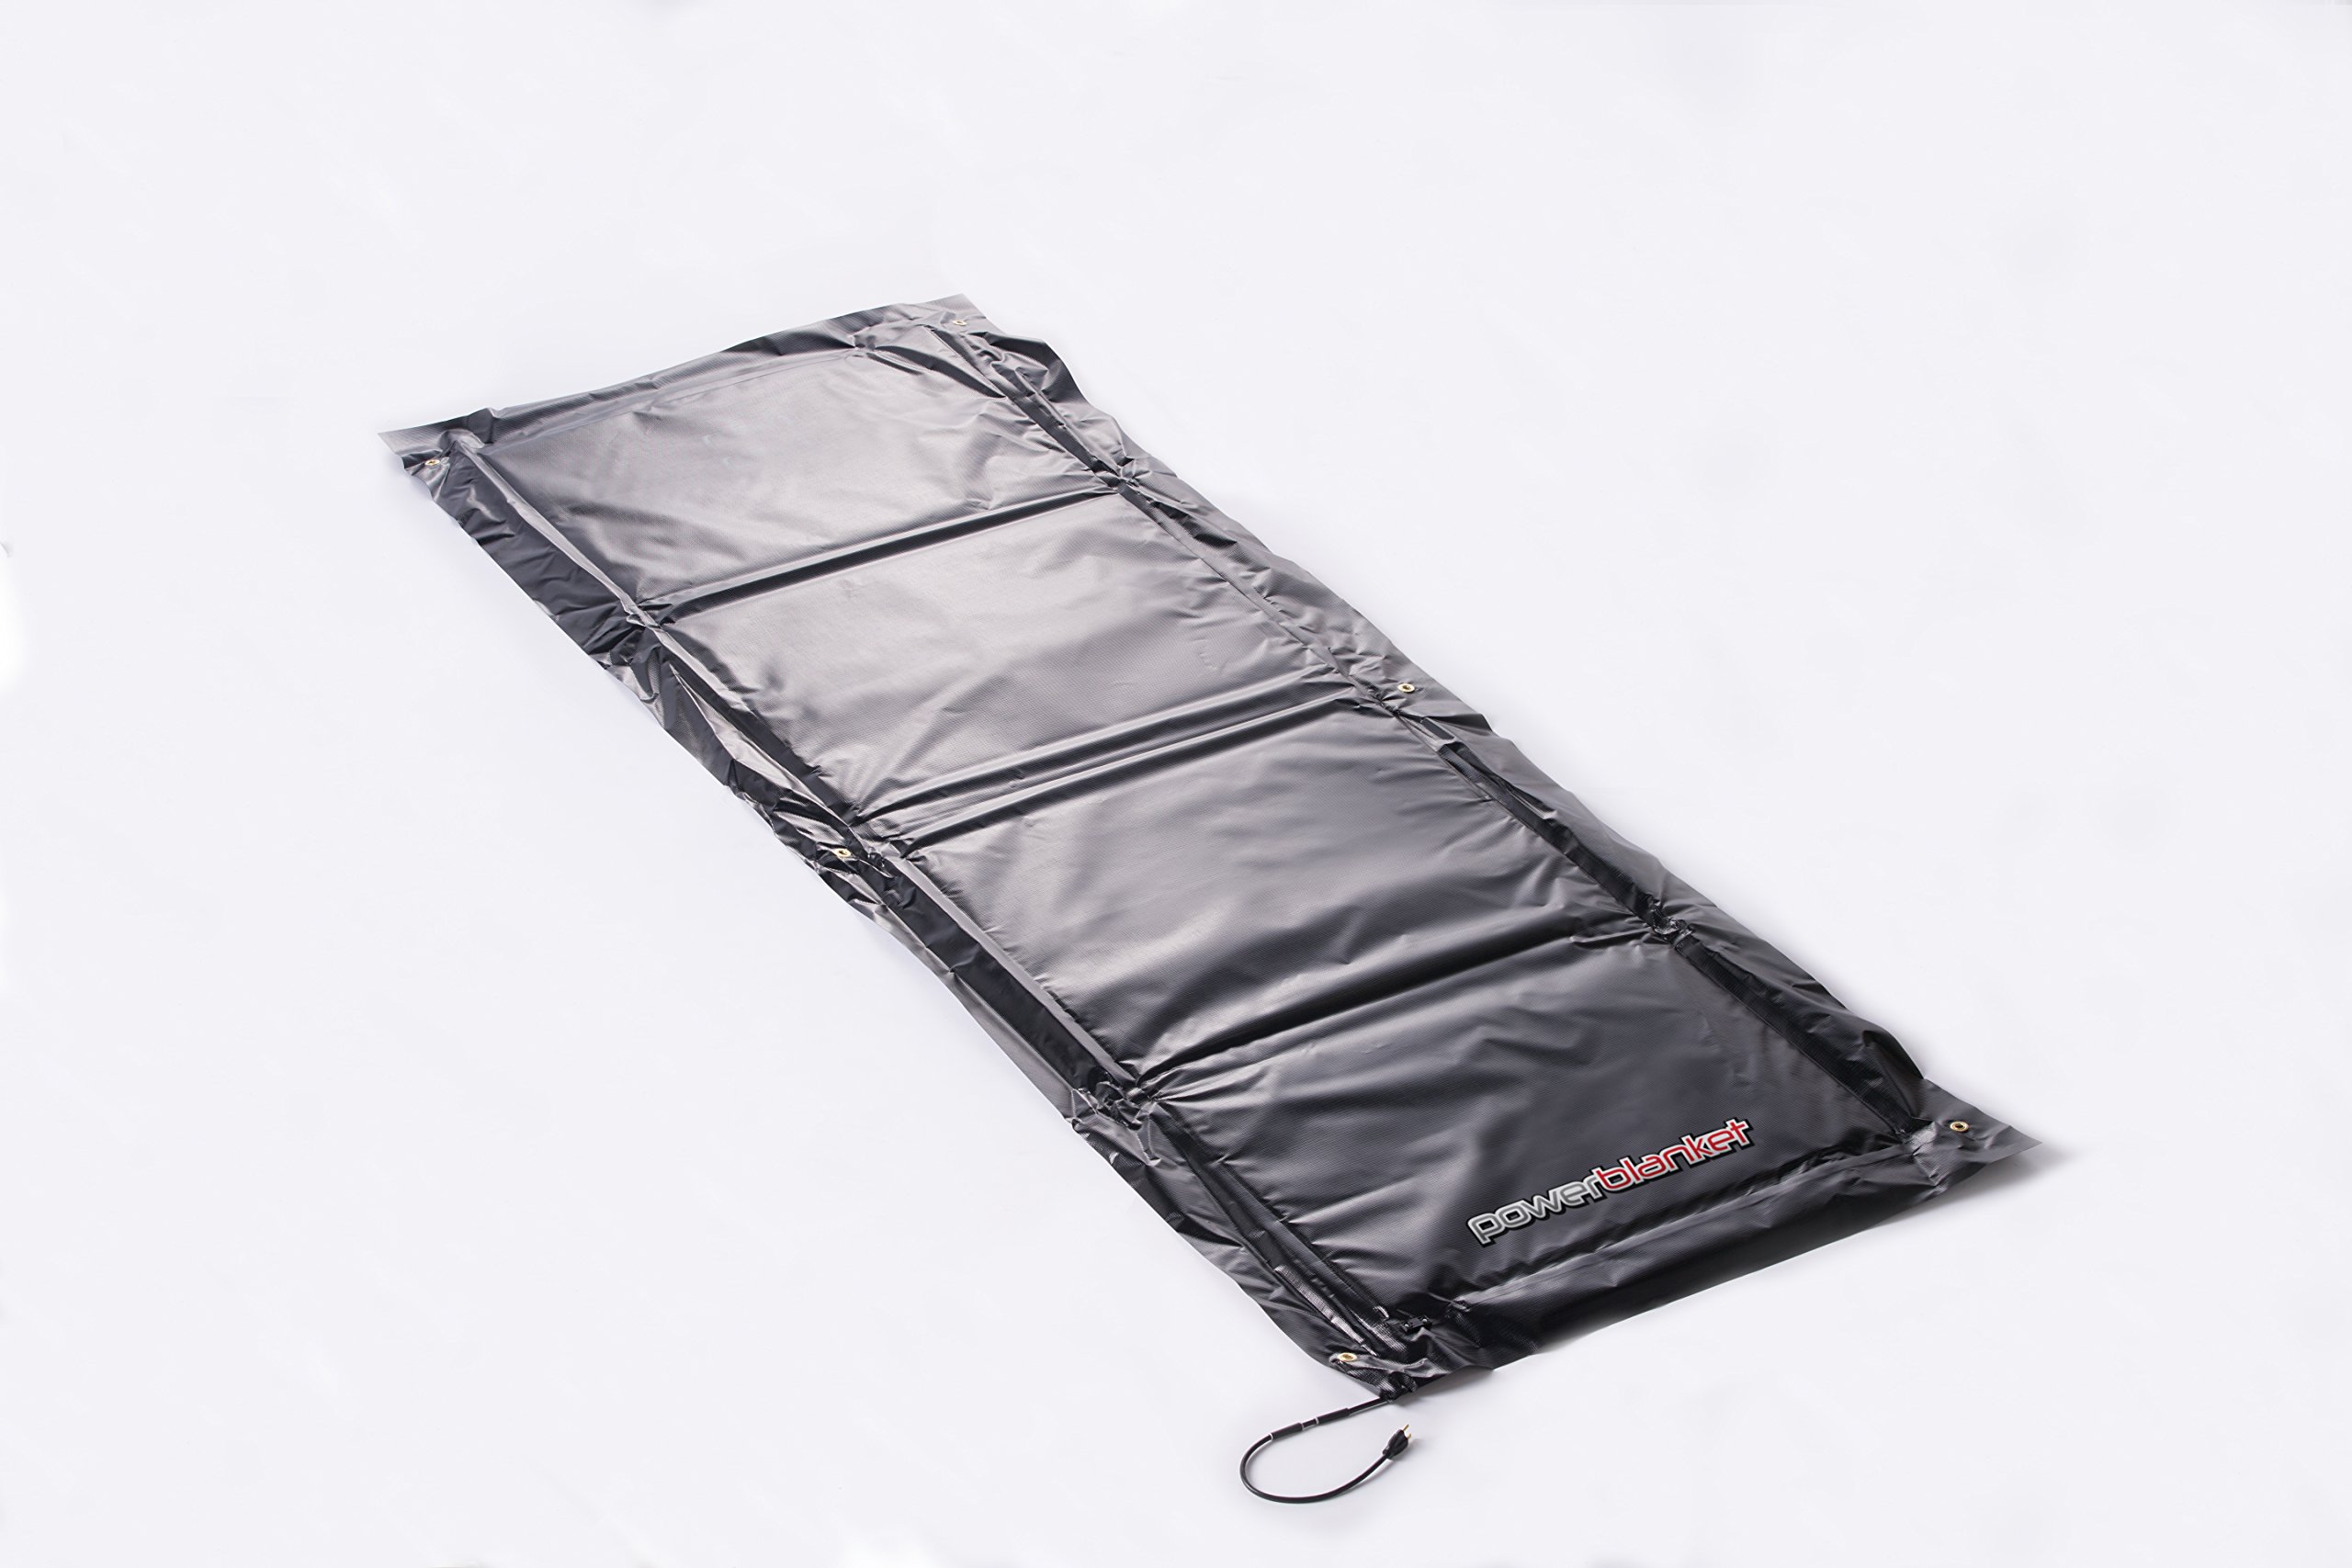 Powerblanket EH0310 High Watt Density Ground Thawing Blanket - Epoxy Curing Blanket, 3' x 10' Heated Dimensions, 4' x 11' Finished Dimensions